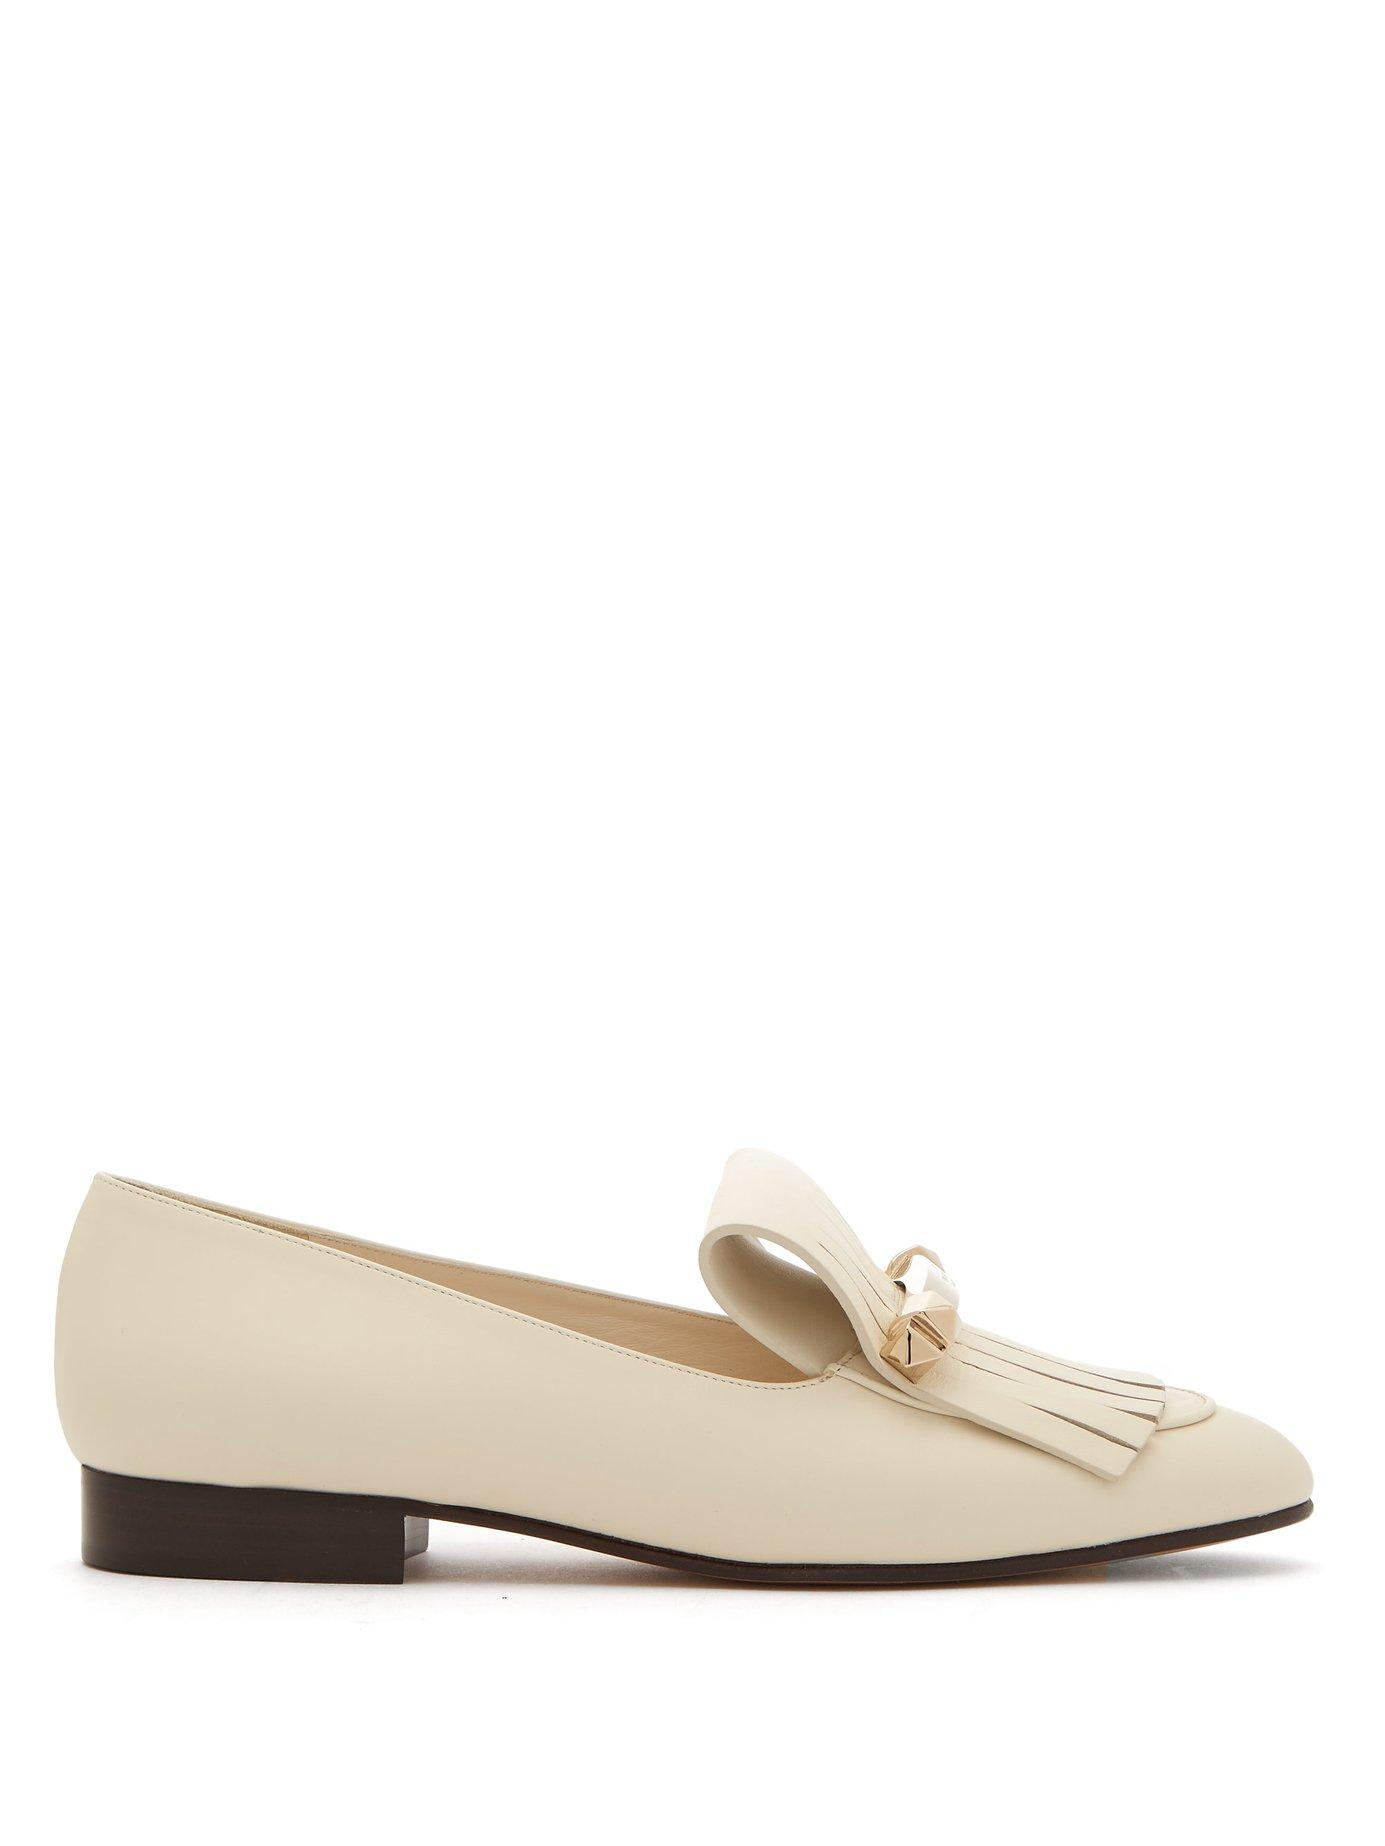 0bc9dba015e Valentino. Women s Uptown Fringed Leather Loafers